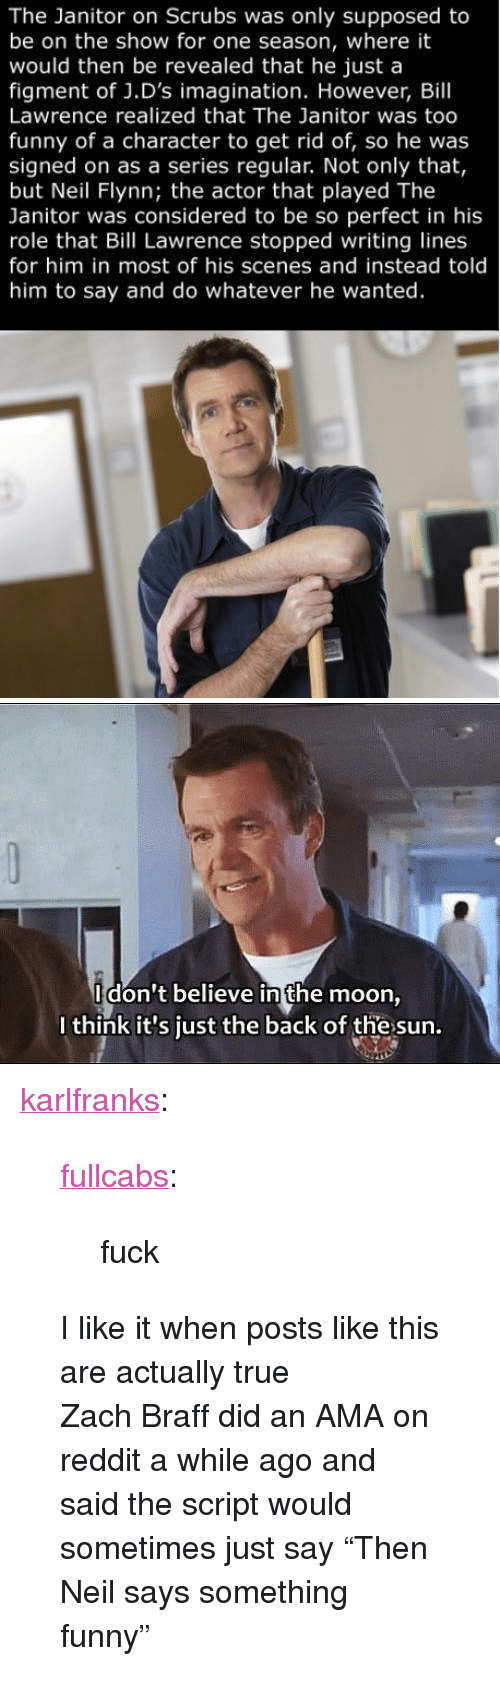 """Funny, Reddit, and Scrubs: The Janitor on Scrubs was only supposed to  be on the show for one season, where it  would then be revealed that he just a  figment of J.D's imagination. However, Bill  Lawrence realized that The Janitor was too  funny of a character to get rid of, so he was  signed on as a series regular. Not only that,  but Neil Flynn; the actor that played The  Janitor was considered to be so perfect in his  role that Bill Lawrence stopped writing lines  for him in most of his scenes and instead told  him to say and do whatever he wanted.   Idon't believe in the moon  I think it's just the back of the sun. <p><a href=""""https://karlfranks.co.uk/post/50669787245/fullcabs-fuck-i-like-it-when-posts-like-this"""" class=""""tumblr_blog"""">karlfranks</a>:</p> <blockquote> <p><a class=""""tumblr_blog"""" href=""""http://fullcabs.tumblr.com/post/50564765823/fuck"""">fullcabs</a>:</p> <blockquote> <p>fuck</p> </blockquote> <p>I like it when posts like this are actually true</p> <p>Zach Braff did an AMA on reddit a while ago and said the script would sometimes just say """"Then Neil says something funny""""</p> </blockquote>"""